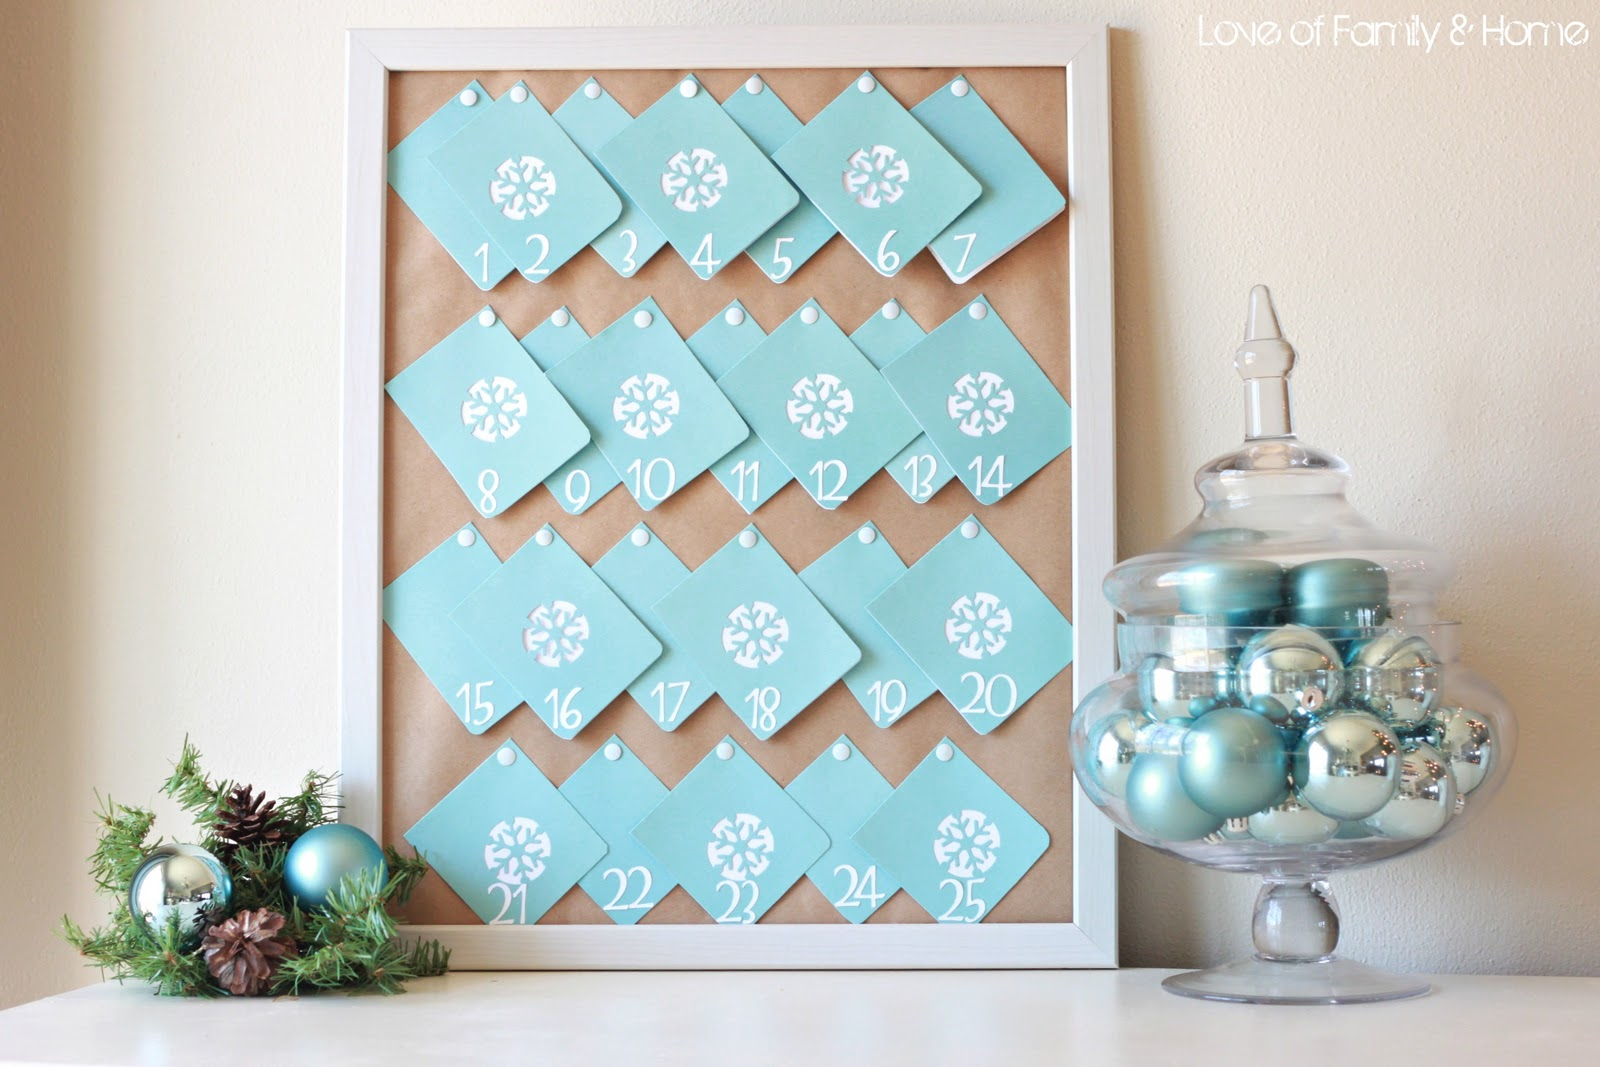 Advent Calendar Diy Ideas : Diy advent calendar love of family home